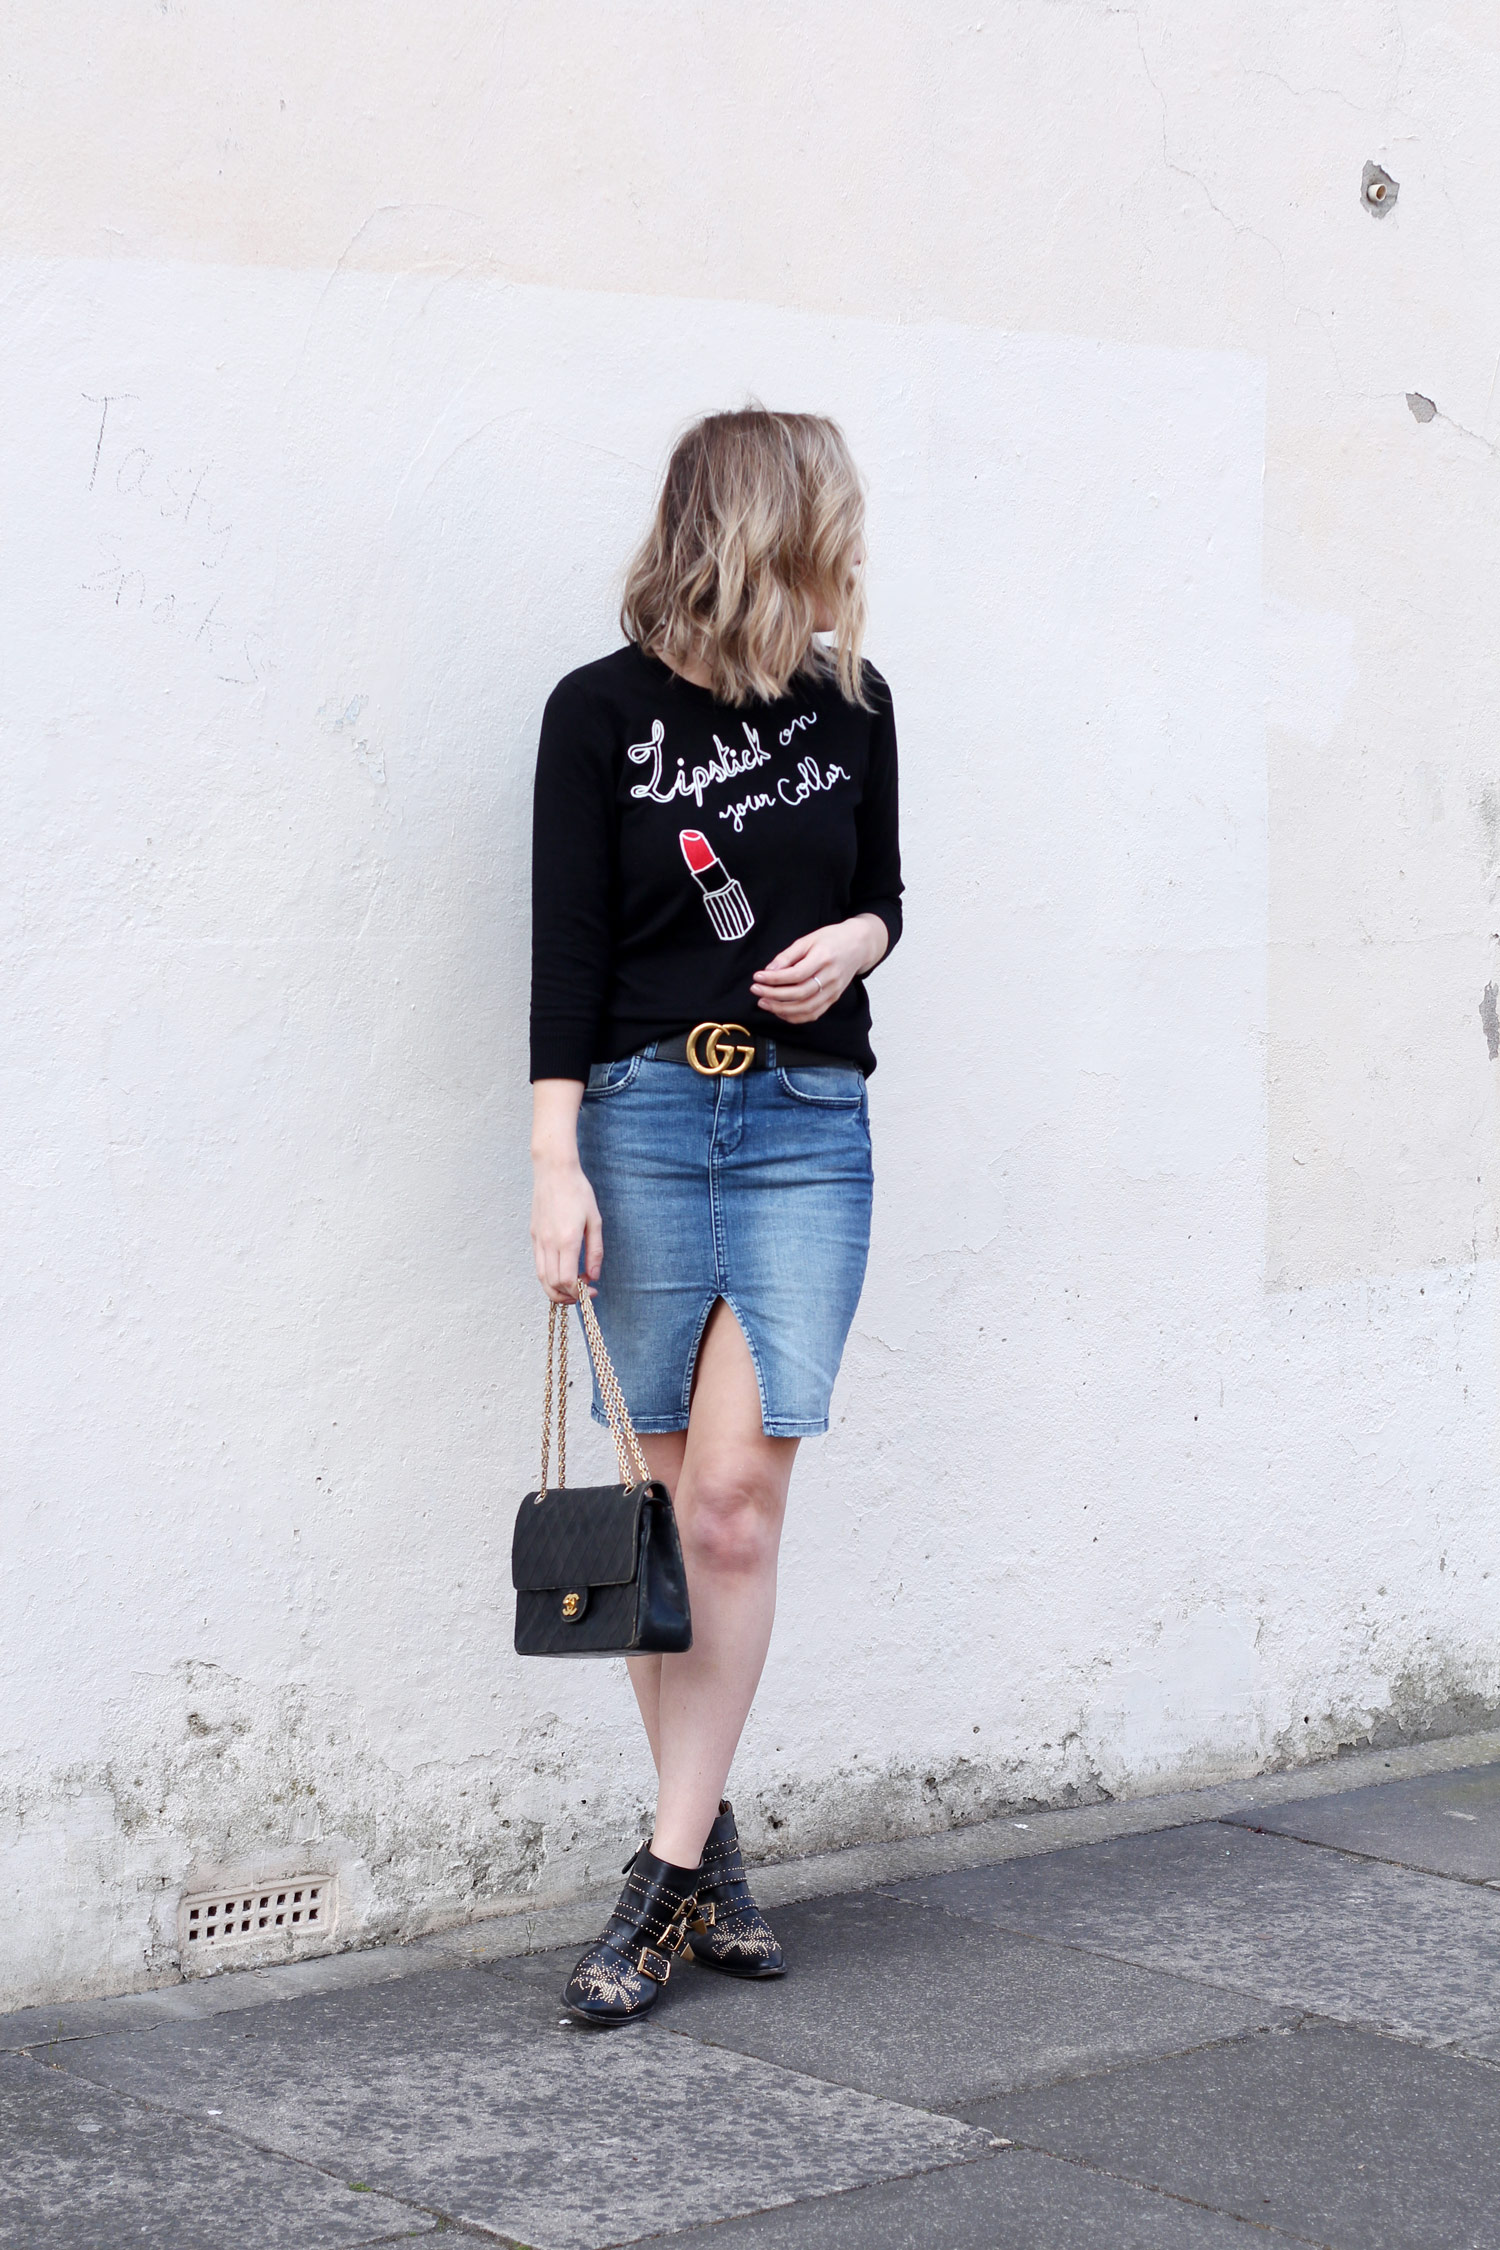 joanie-clothing-slogan-jumper-denim-skirt-vintage-chanel-4